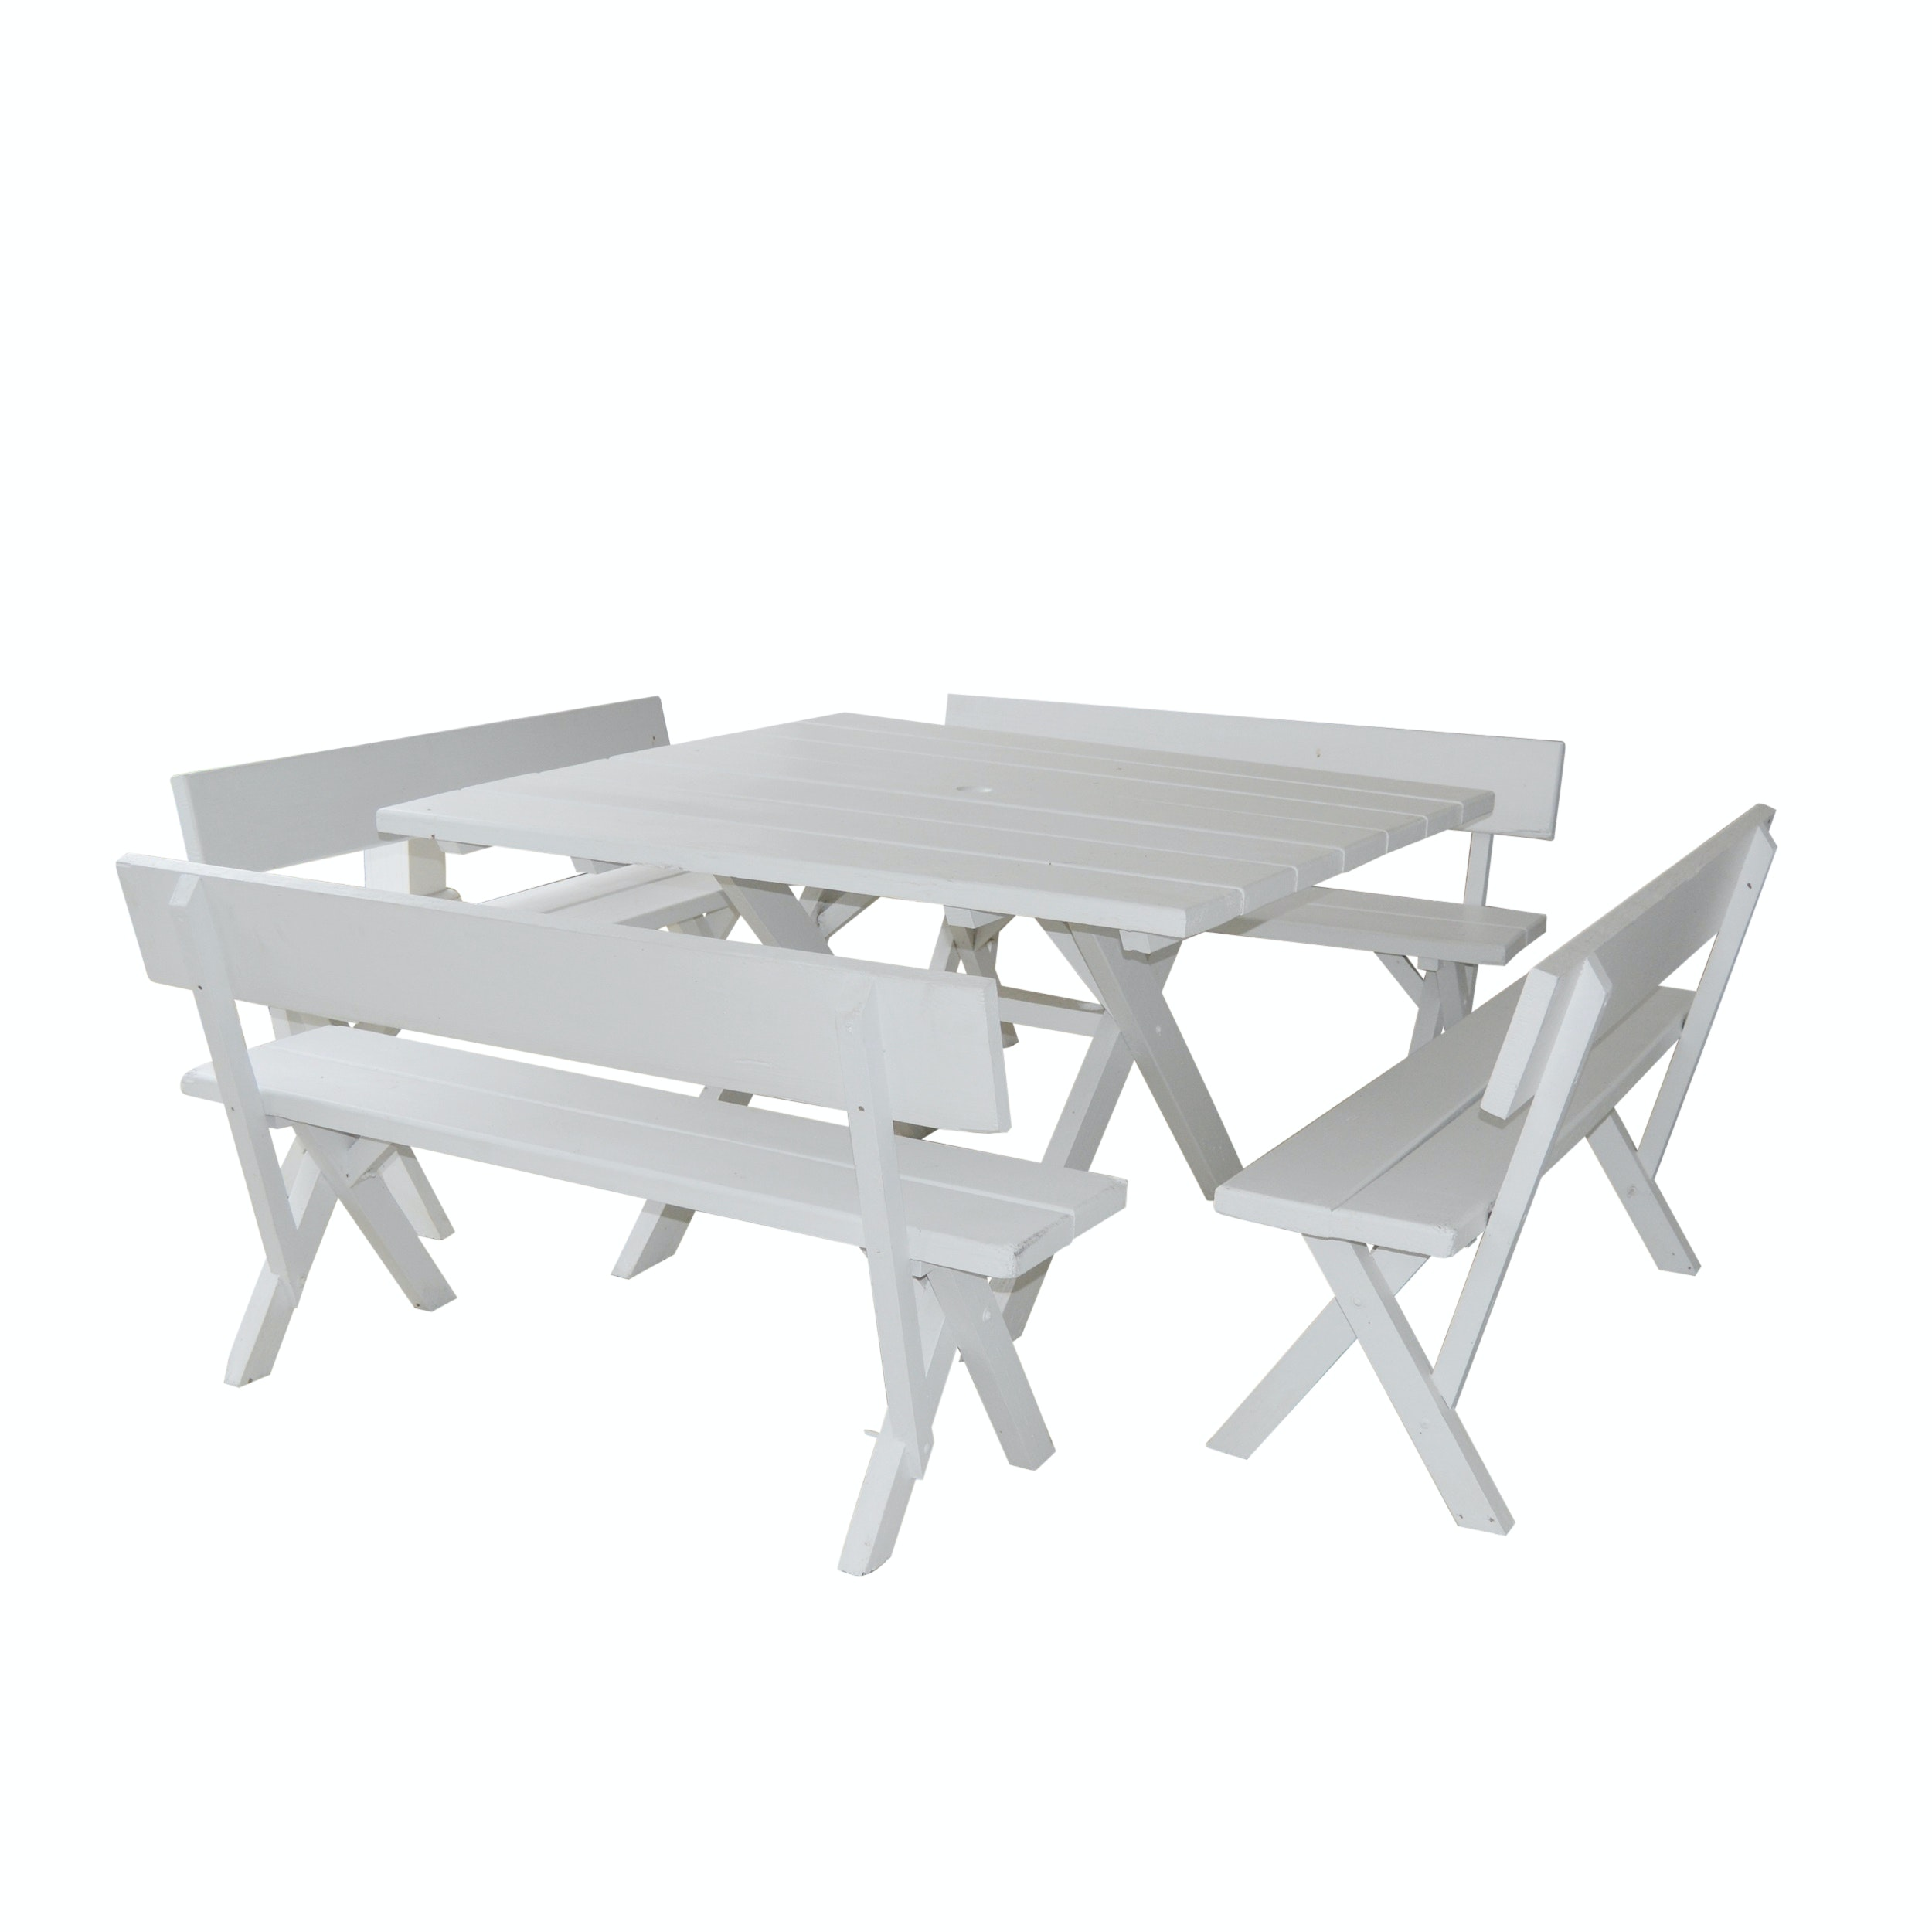 Painted Picnic Table and Bench Seats